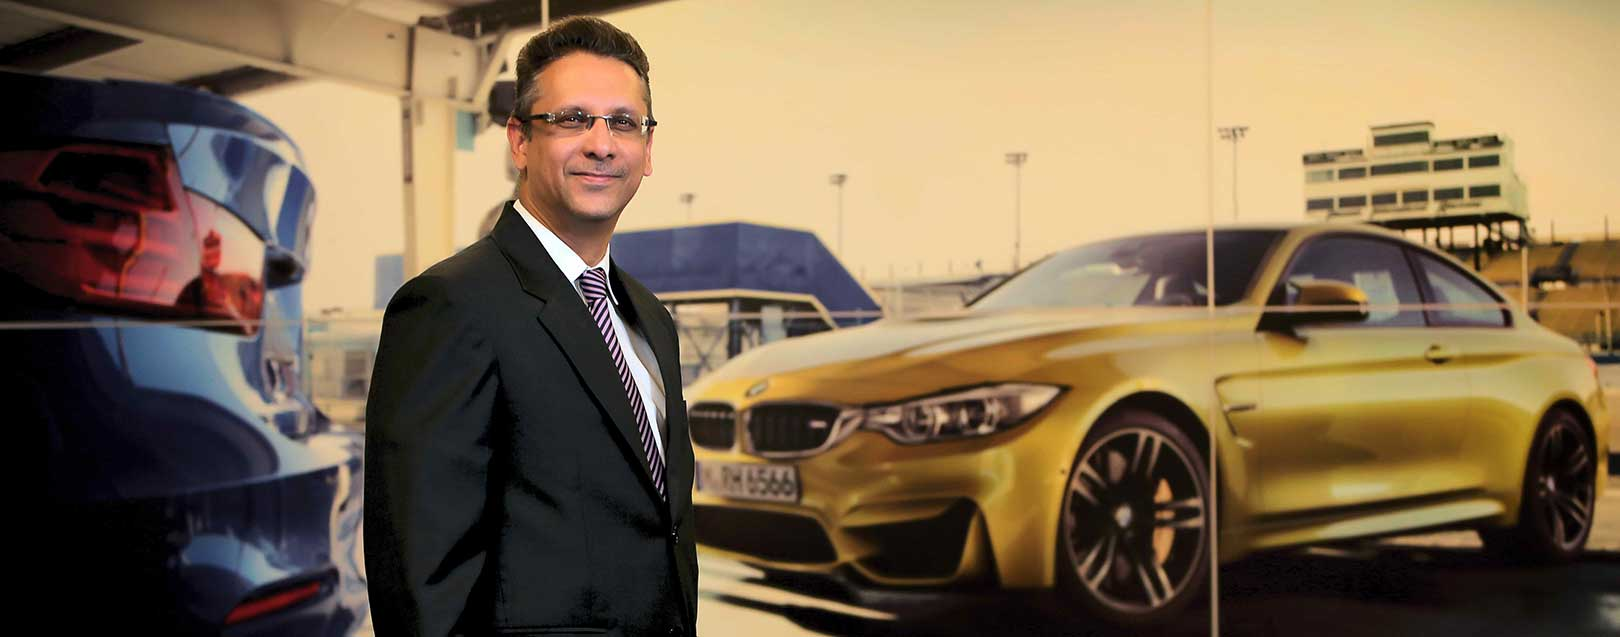 100 years for BMW Group means 100 years of forward thinking, Vikram Pahwa